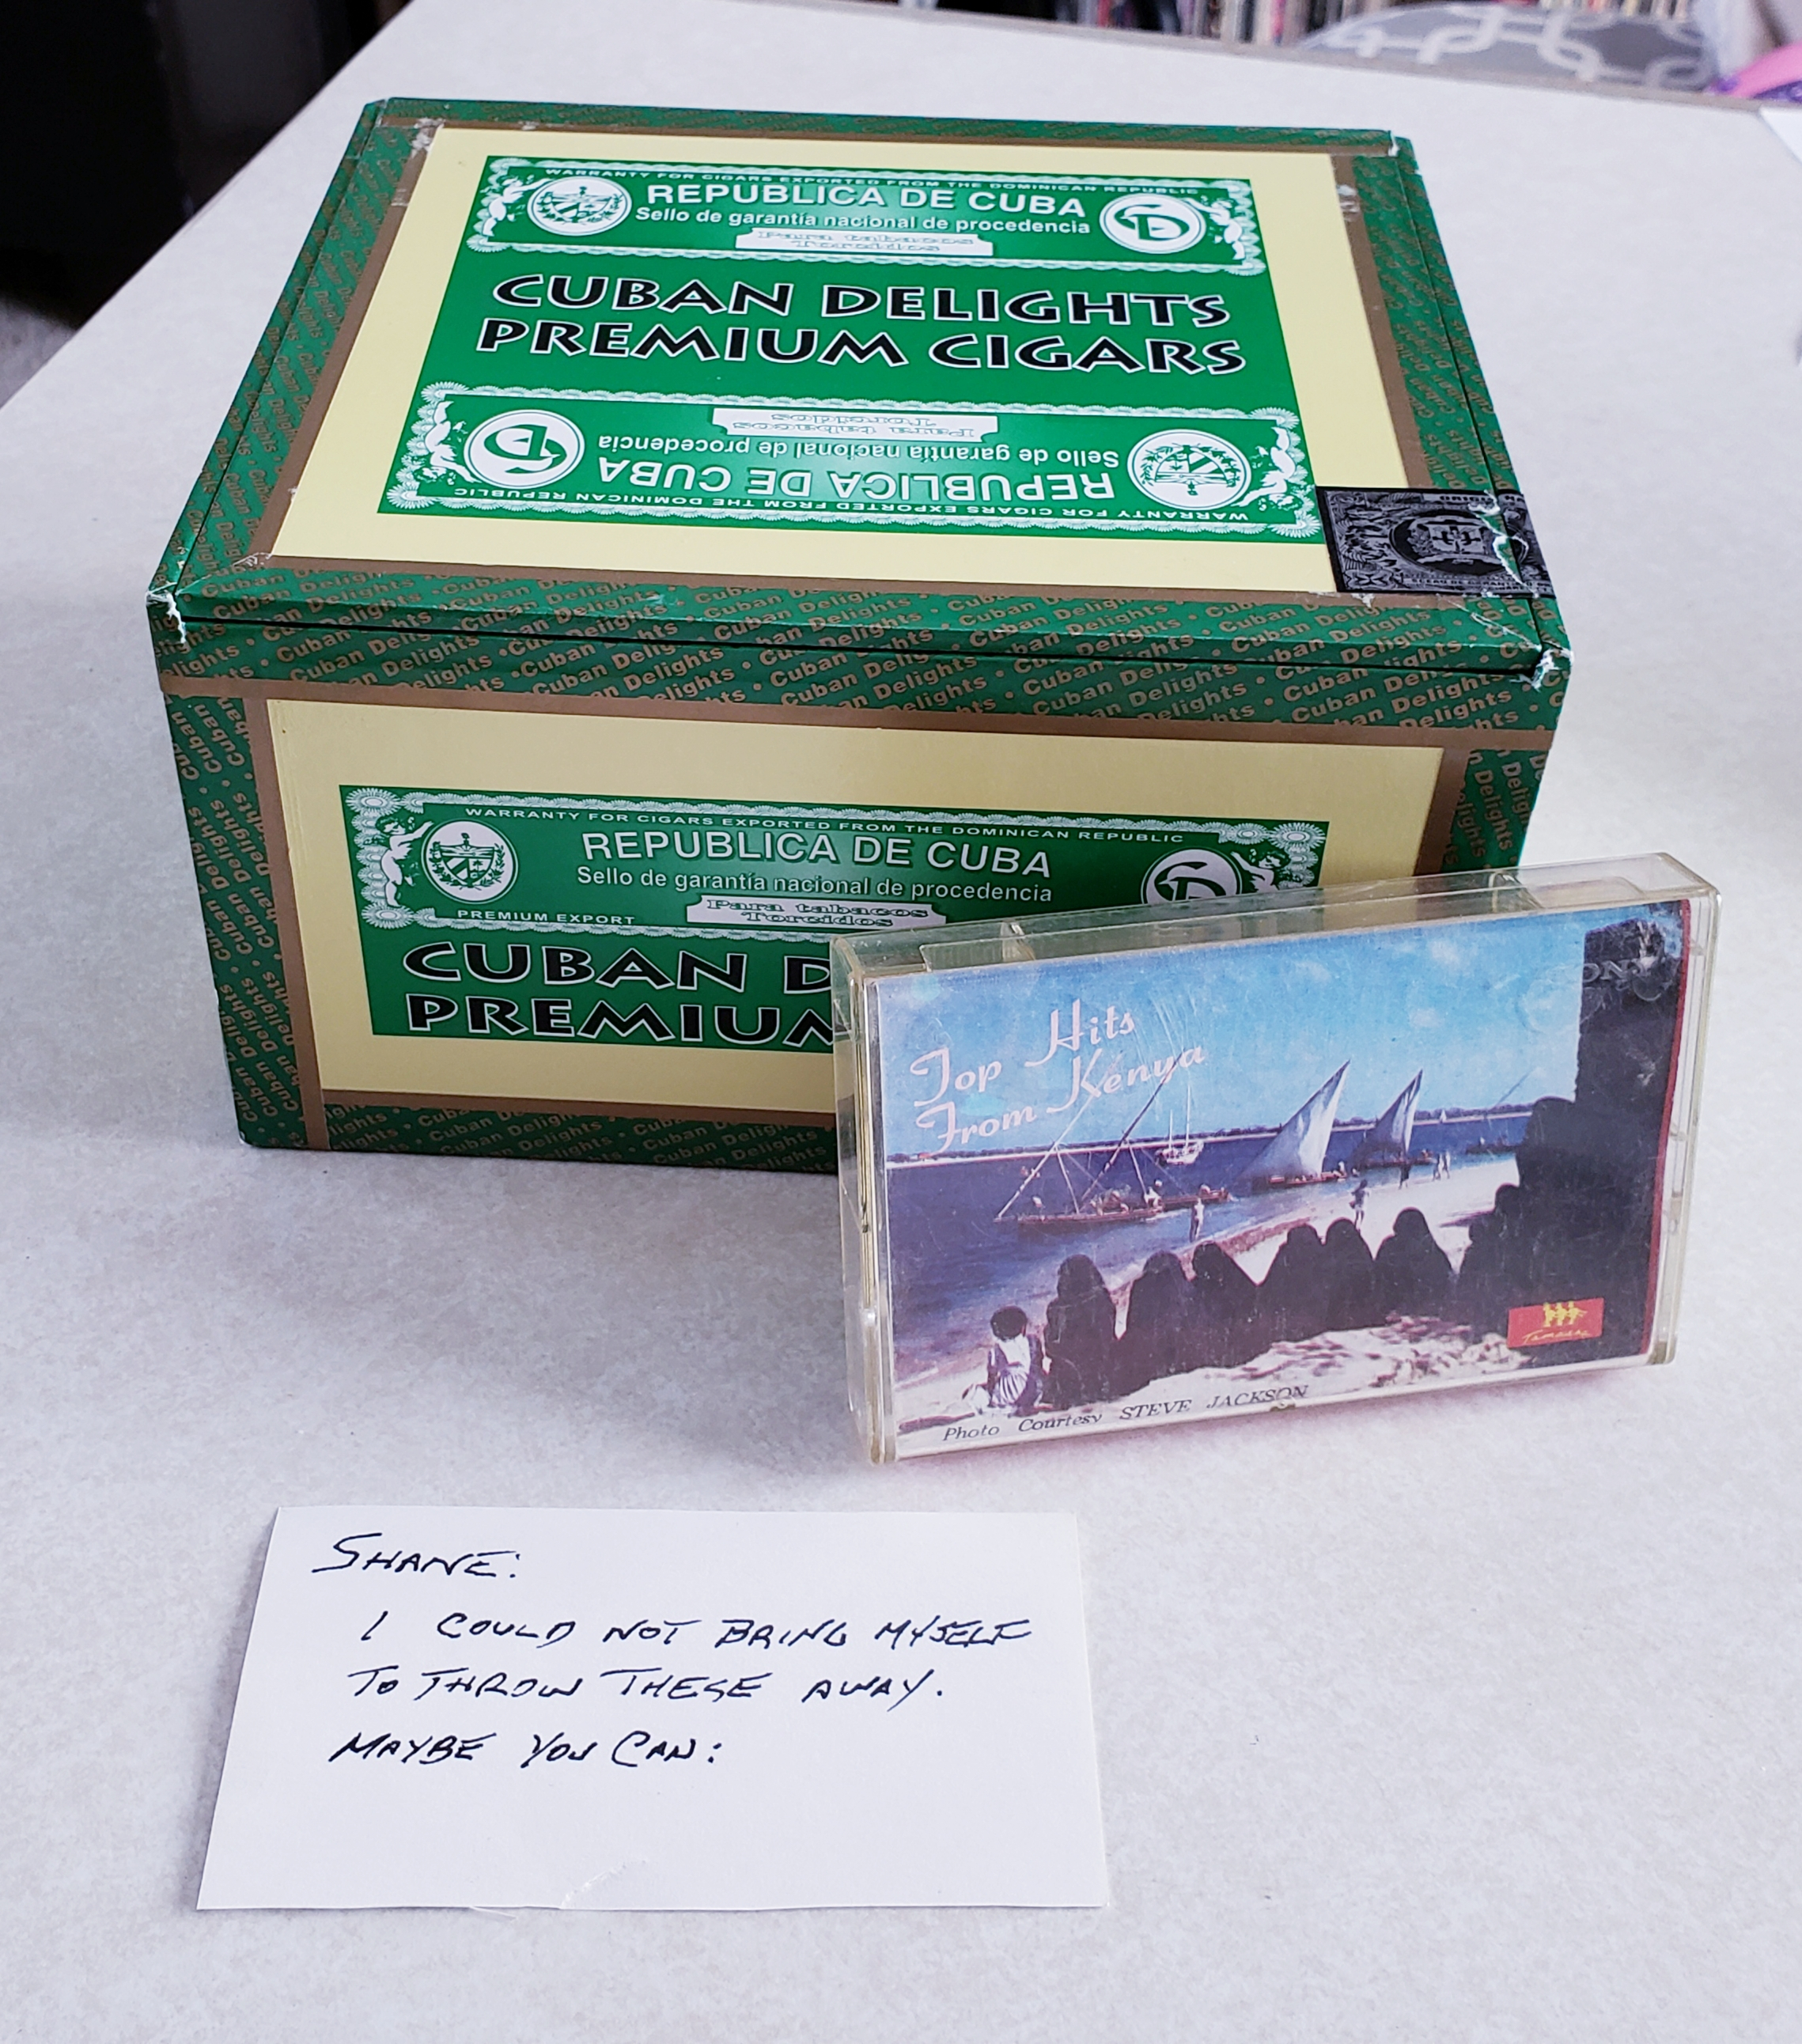 cigar box, cassette, and note